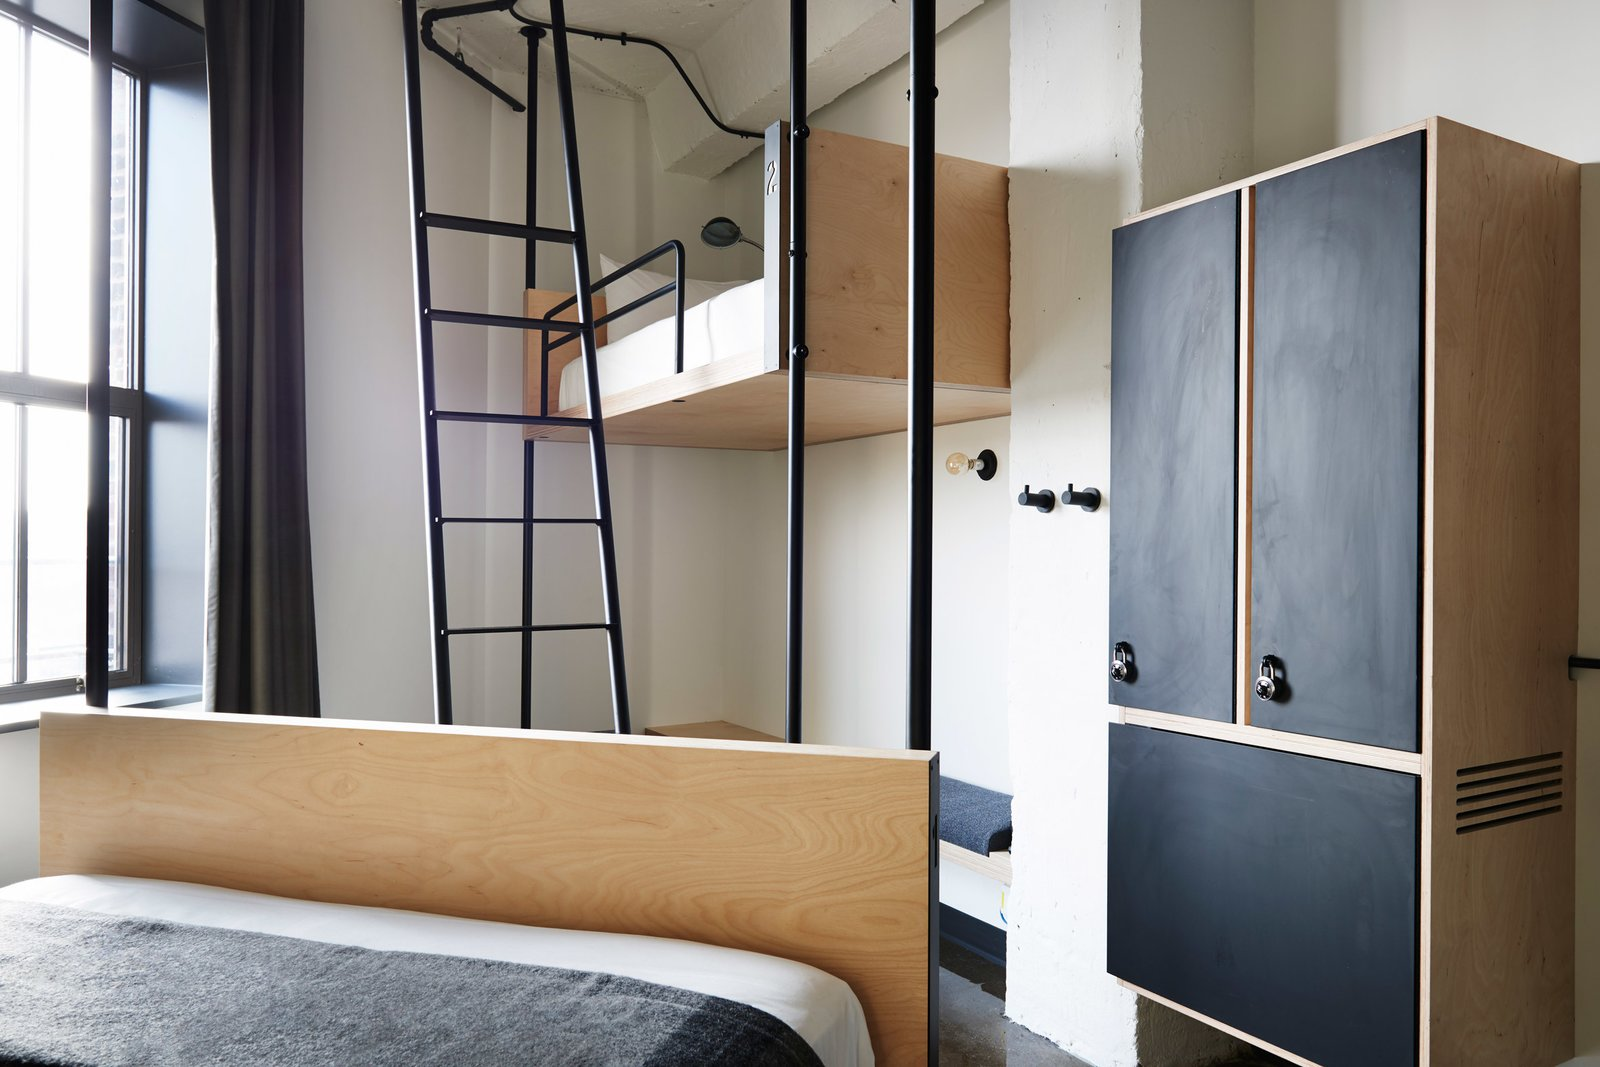 Photography is by Olivier Blouin. Tagged: Bedroom, Bunks, Bed, Wall Lighting, and Wardrobe.  Photo 4 of 7 in 6 Well-Designed Hostels For the Minimalist Traveler from Well-Designed Hostels